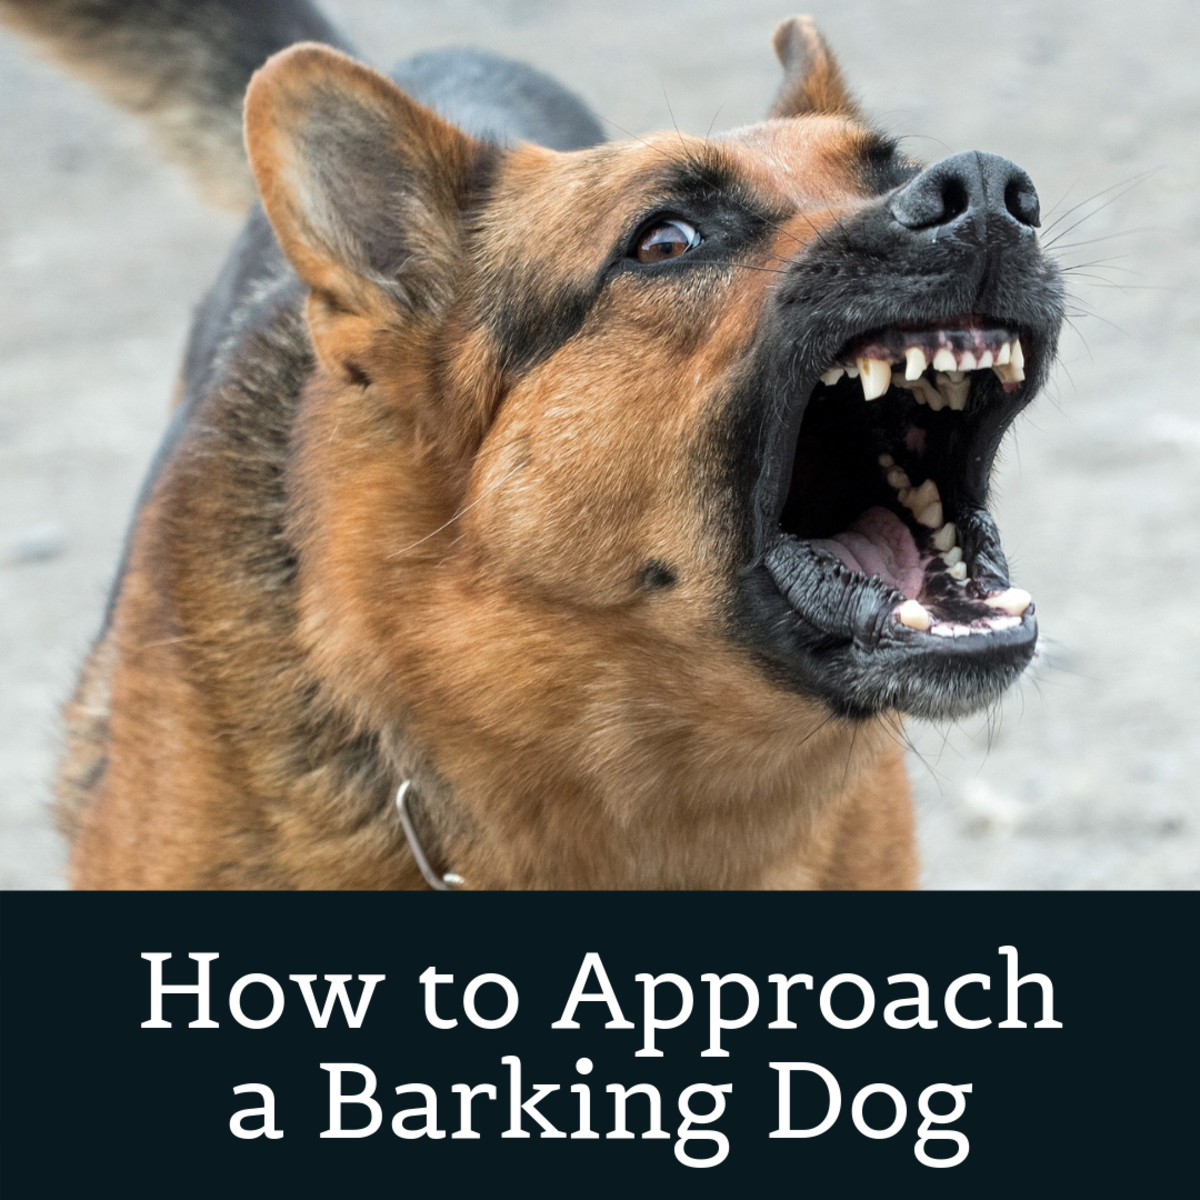 This guide will tell you how to correctly approach a barking dog, including what to avoid doing.